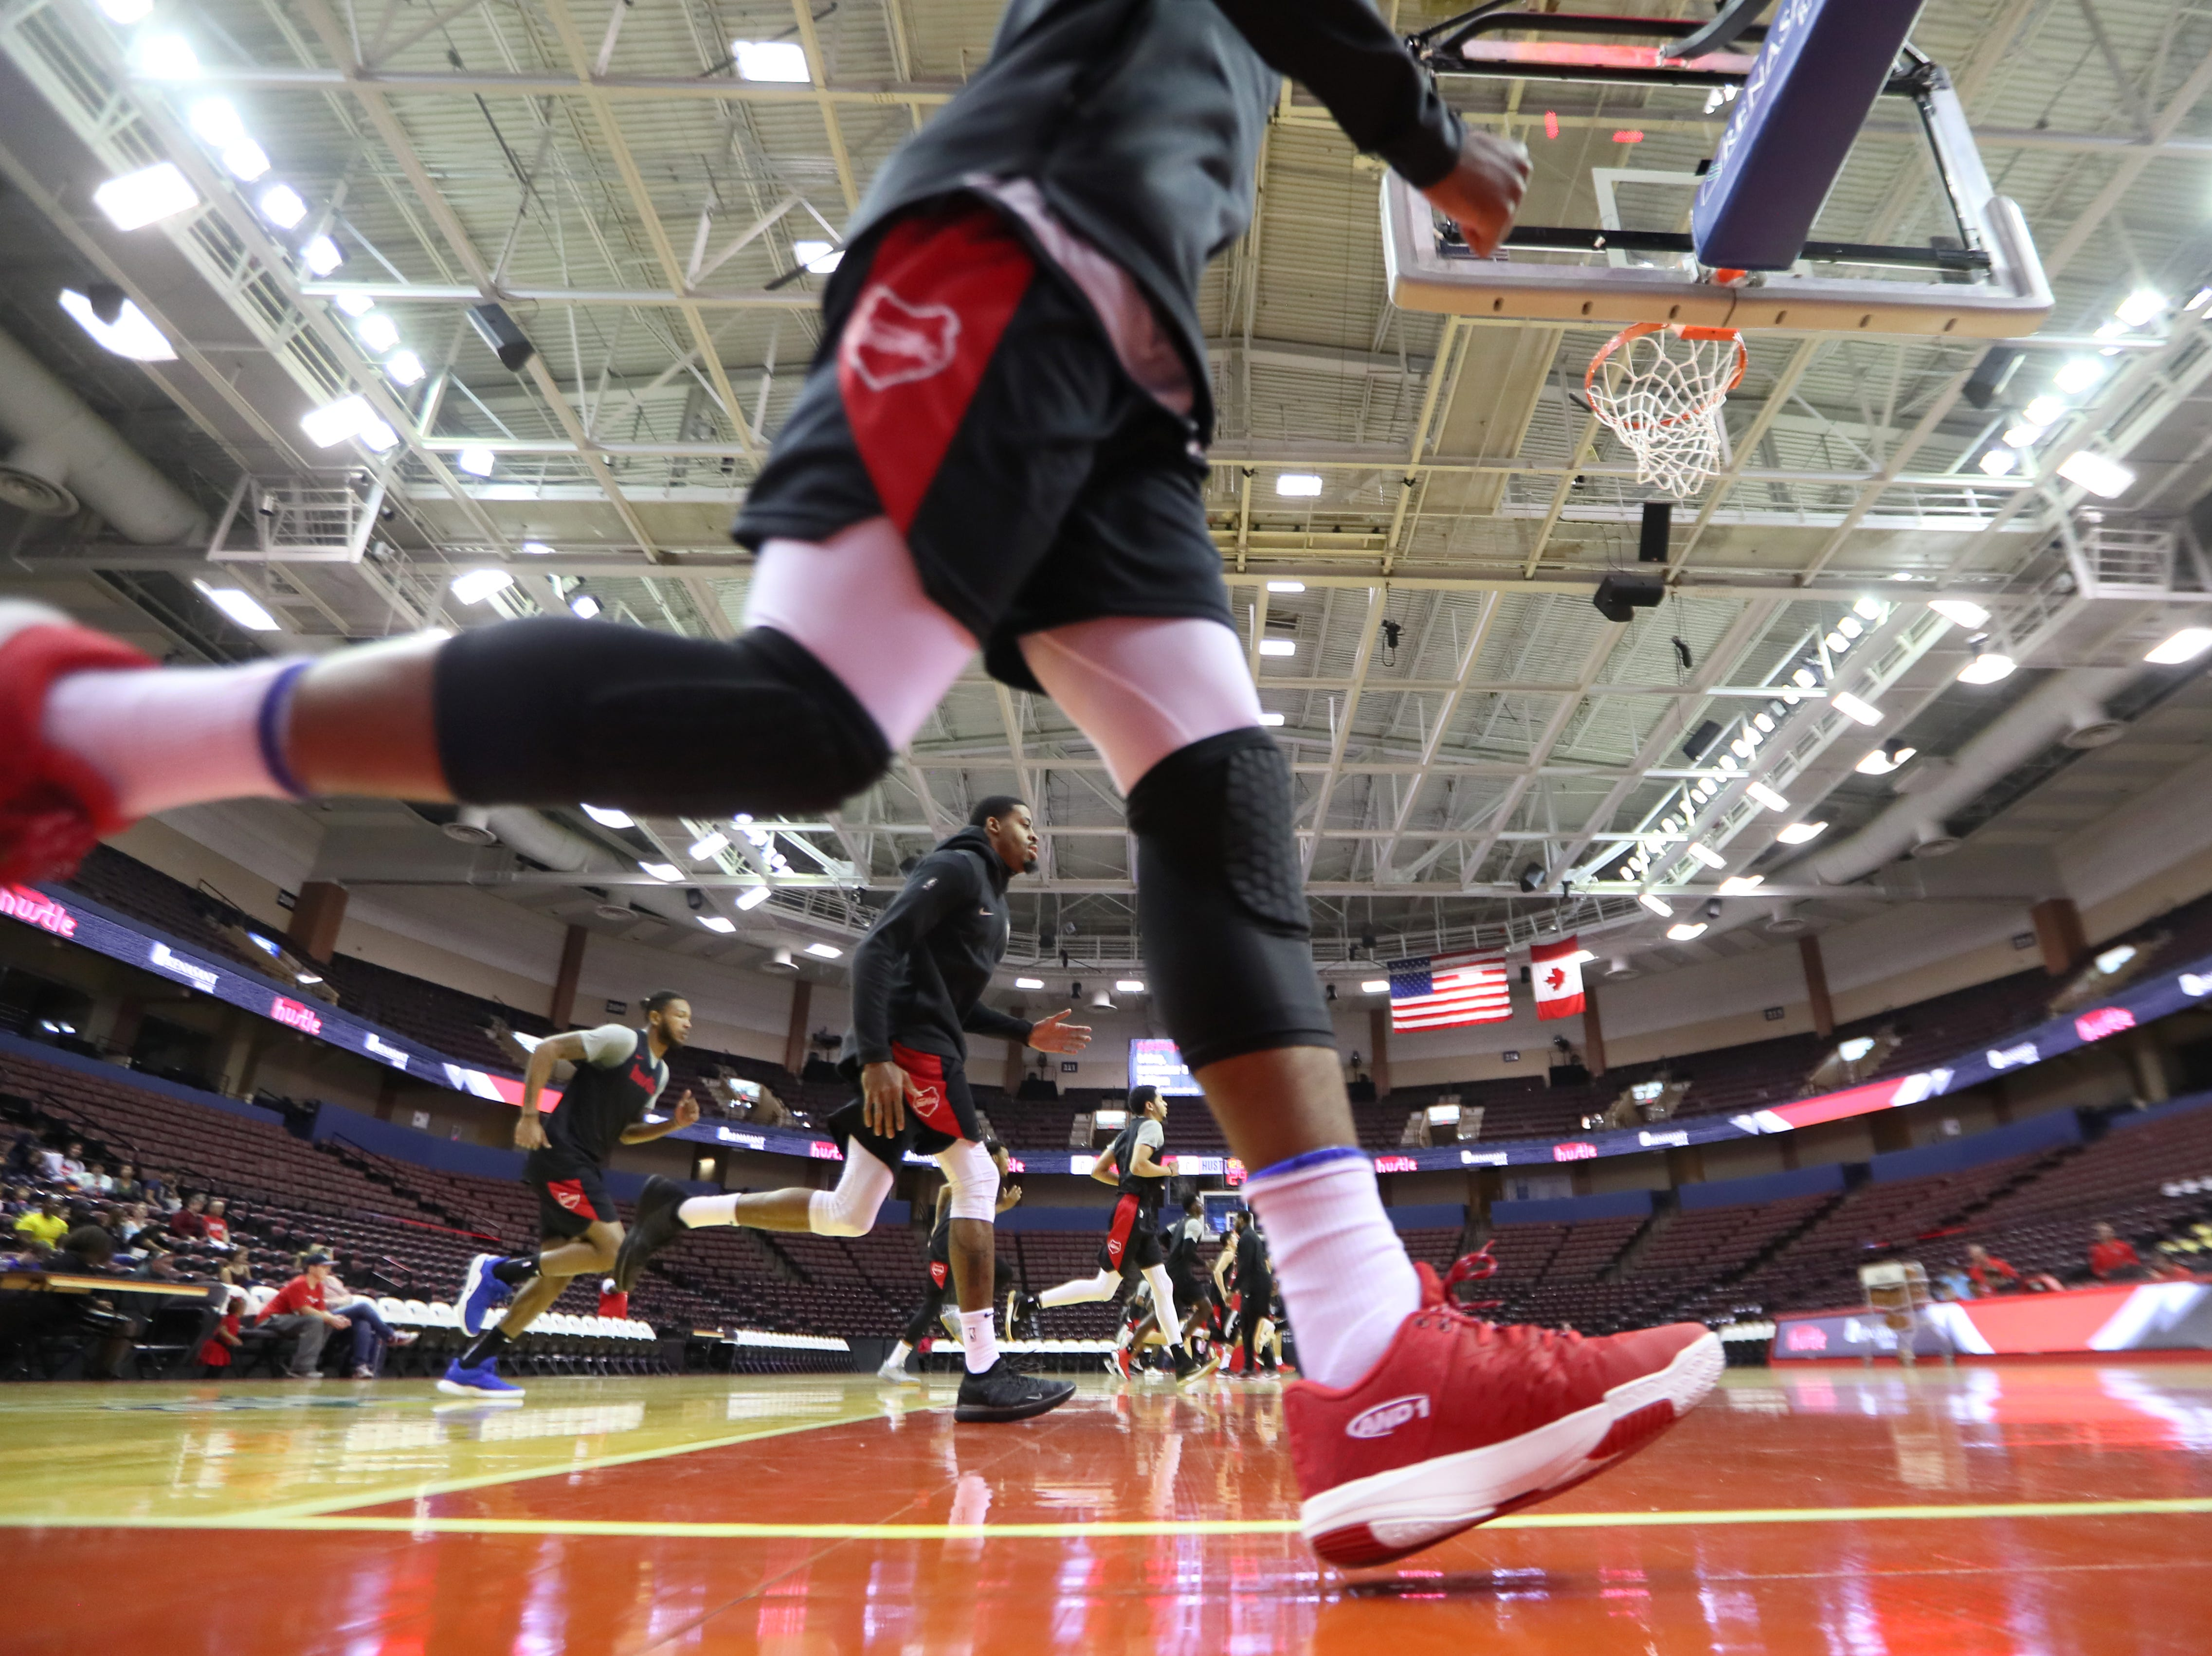 Memphis Hustle players warm up before playing a scrimmage during Family Fun Day at the Landers Center on Sunday, Oct. 28, 2018.